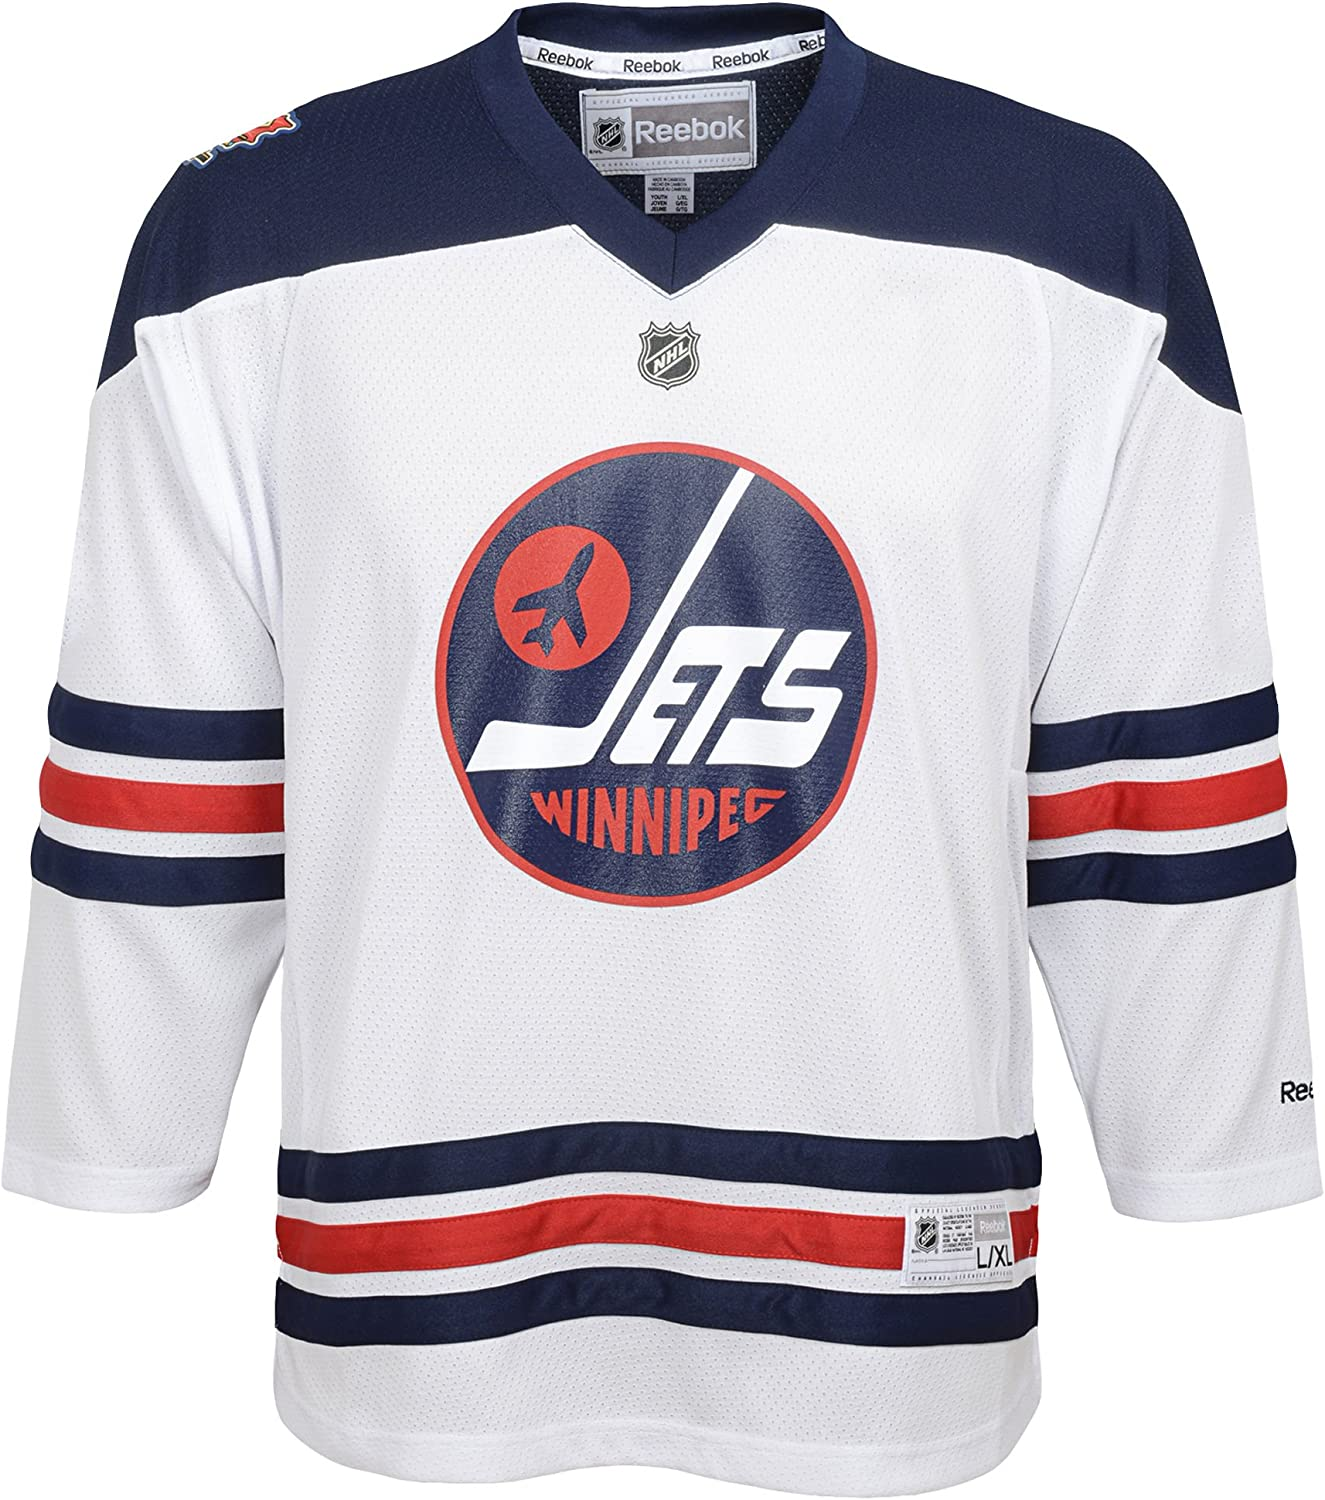 jets jersey heritage classic